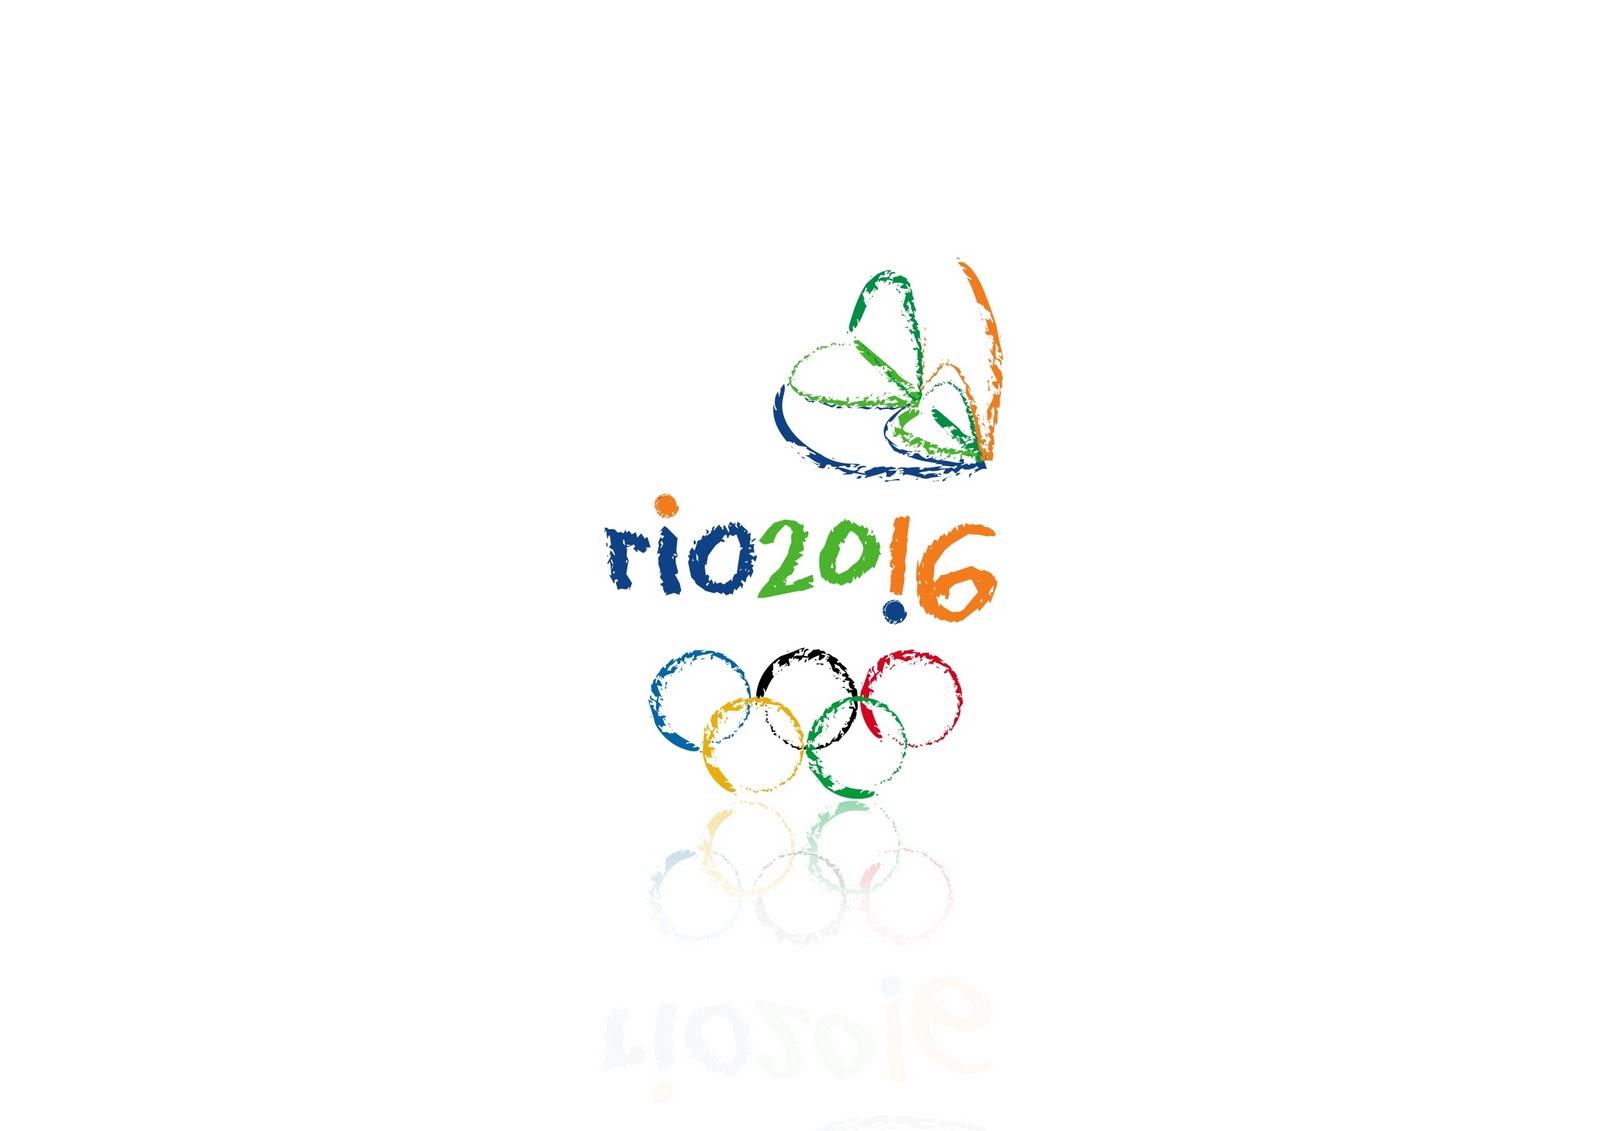 Olympic rings 2016 image - e50